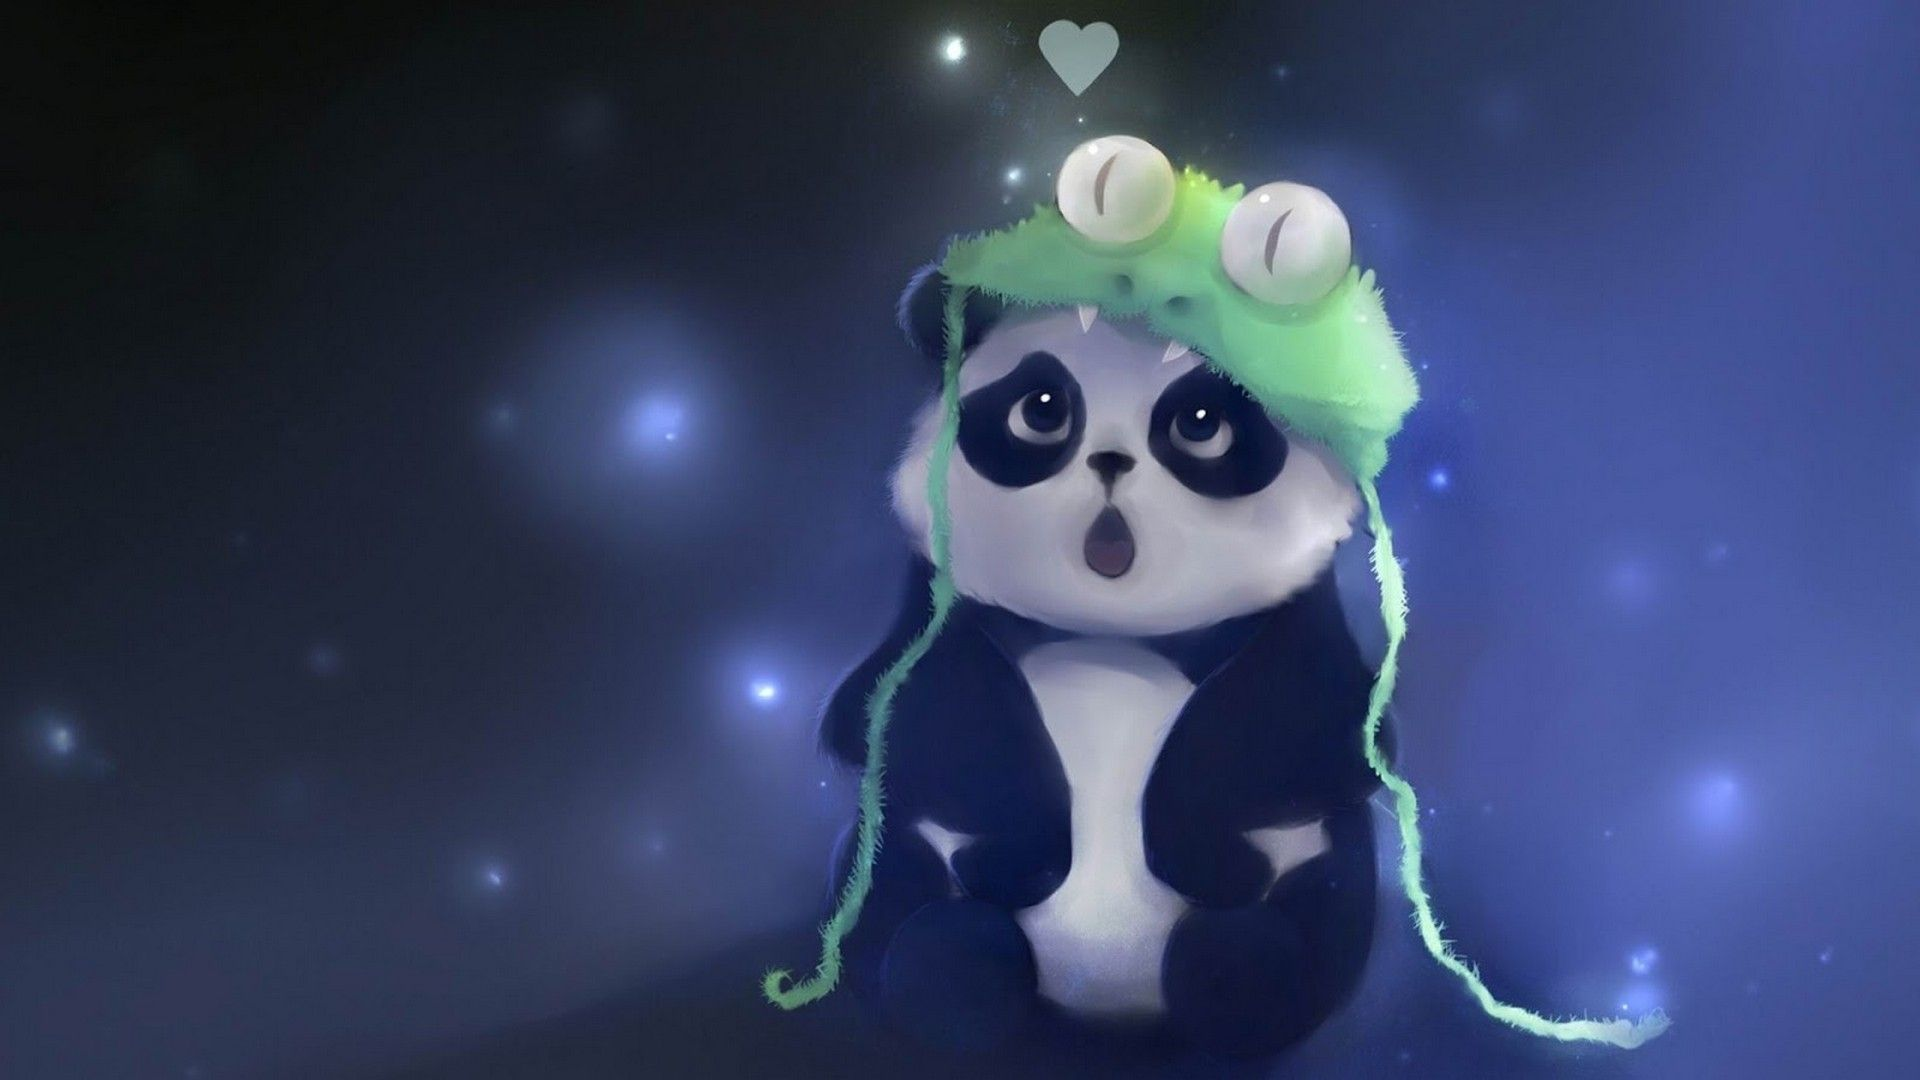 Live Wallpaper Hd Cute Panda Wallpaper Cartoon Wallpaper Hd Panda Wallpapers